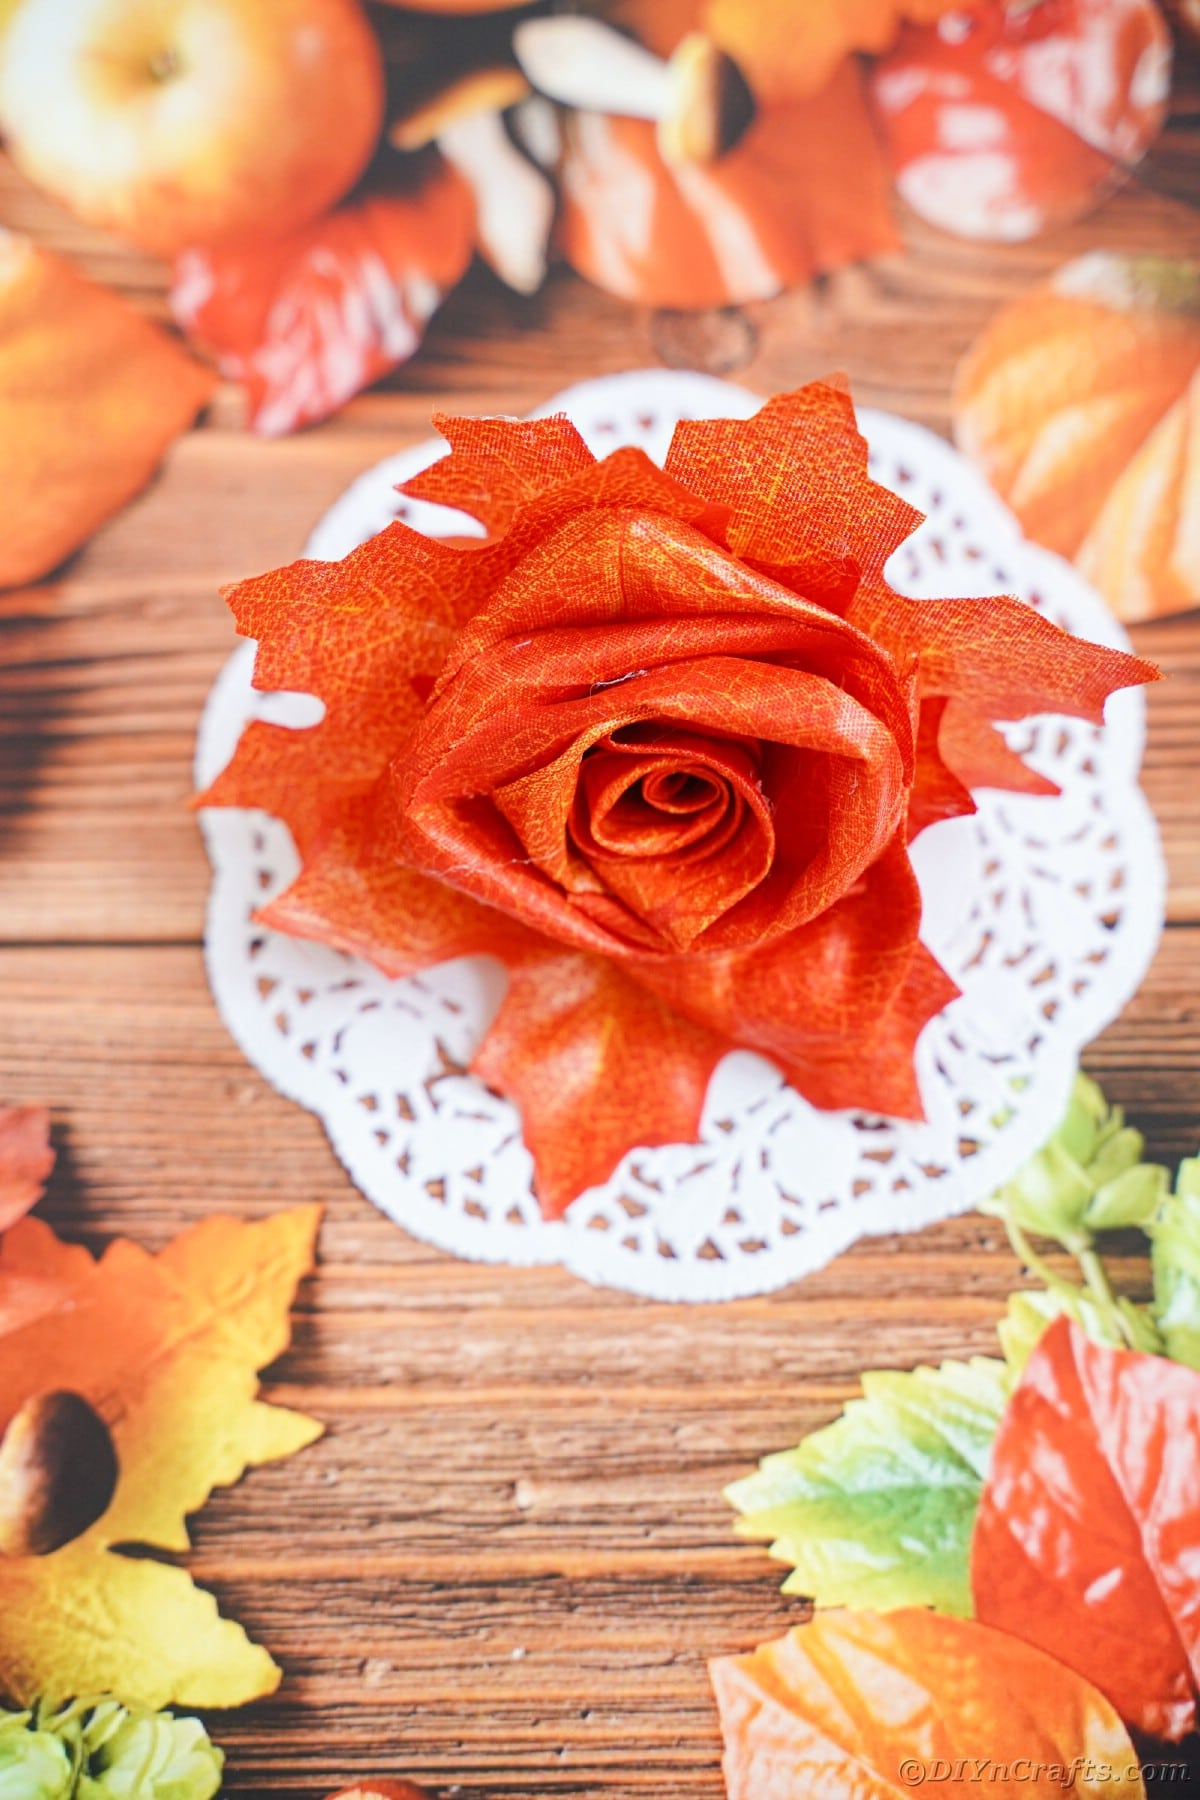 Fake rose made from leaves on fall themed paper